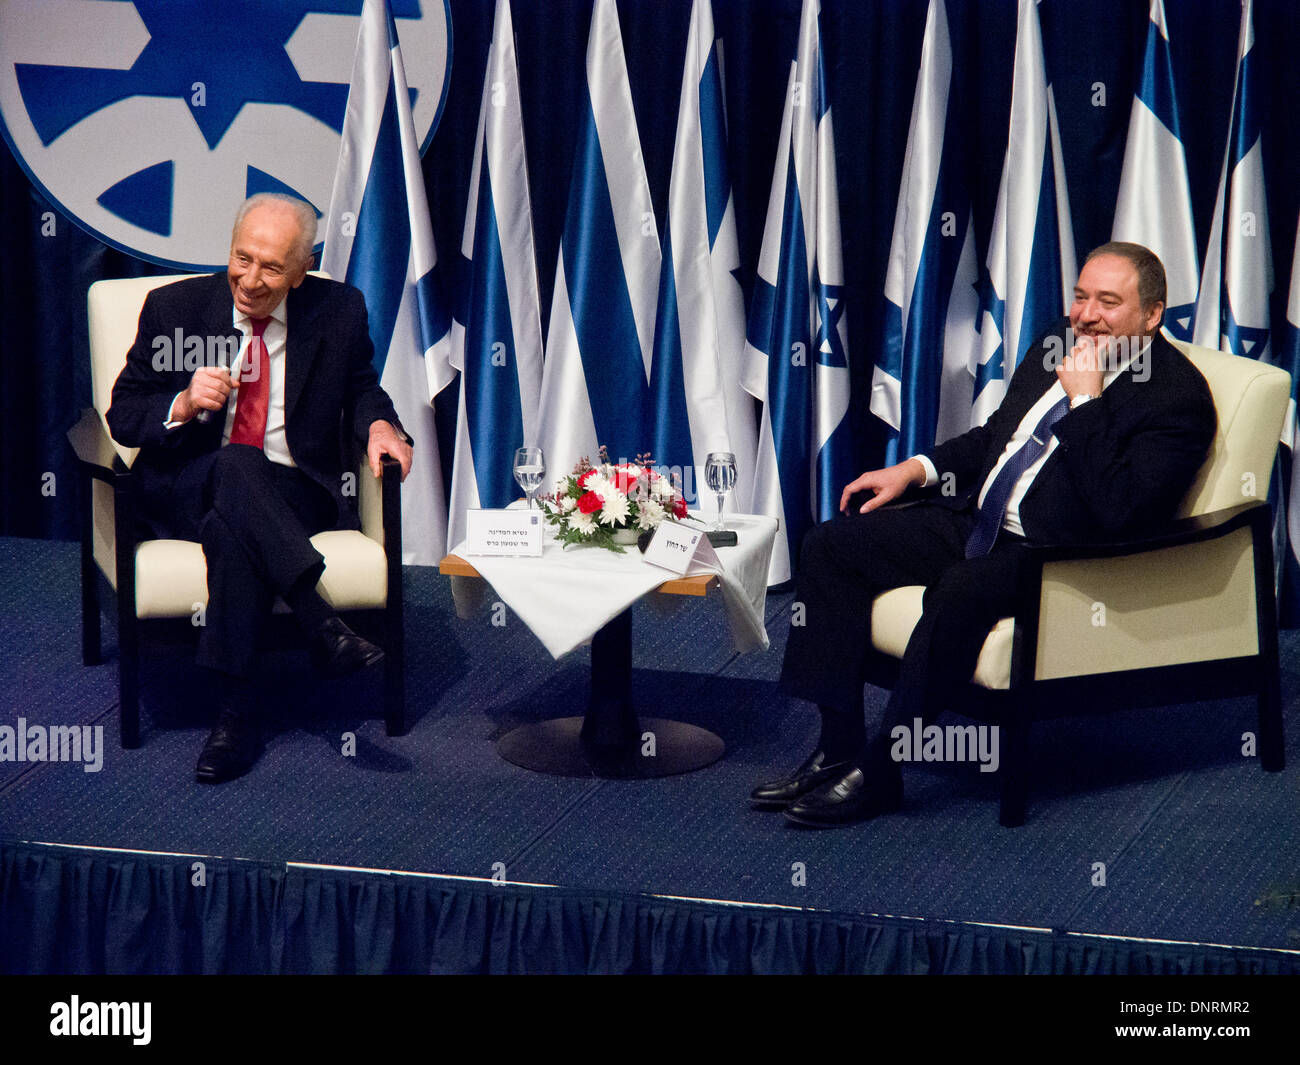 Jerusalem, Israel. 5th Jan, 2014. President of the State of Israel, Shimon Peres (L), addresses diplomats, seated besides FM Avigdor Lieberman (R) at the Ministry of Foreign Affairs. Jerusalem, Israel. 5-Jan-2014.  President Peres opened the Ambassadors Conference for heads of Israeli diplomatic missions worldwide alongside Foreign Minister Lieberman at the Ministry of Foreign Affairs. Credit:  Nir Alon/Alamy Live News - Stock Image